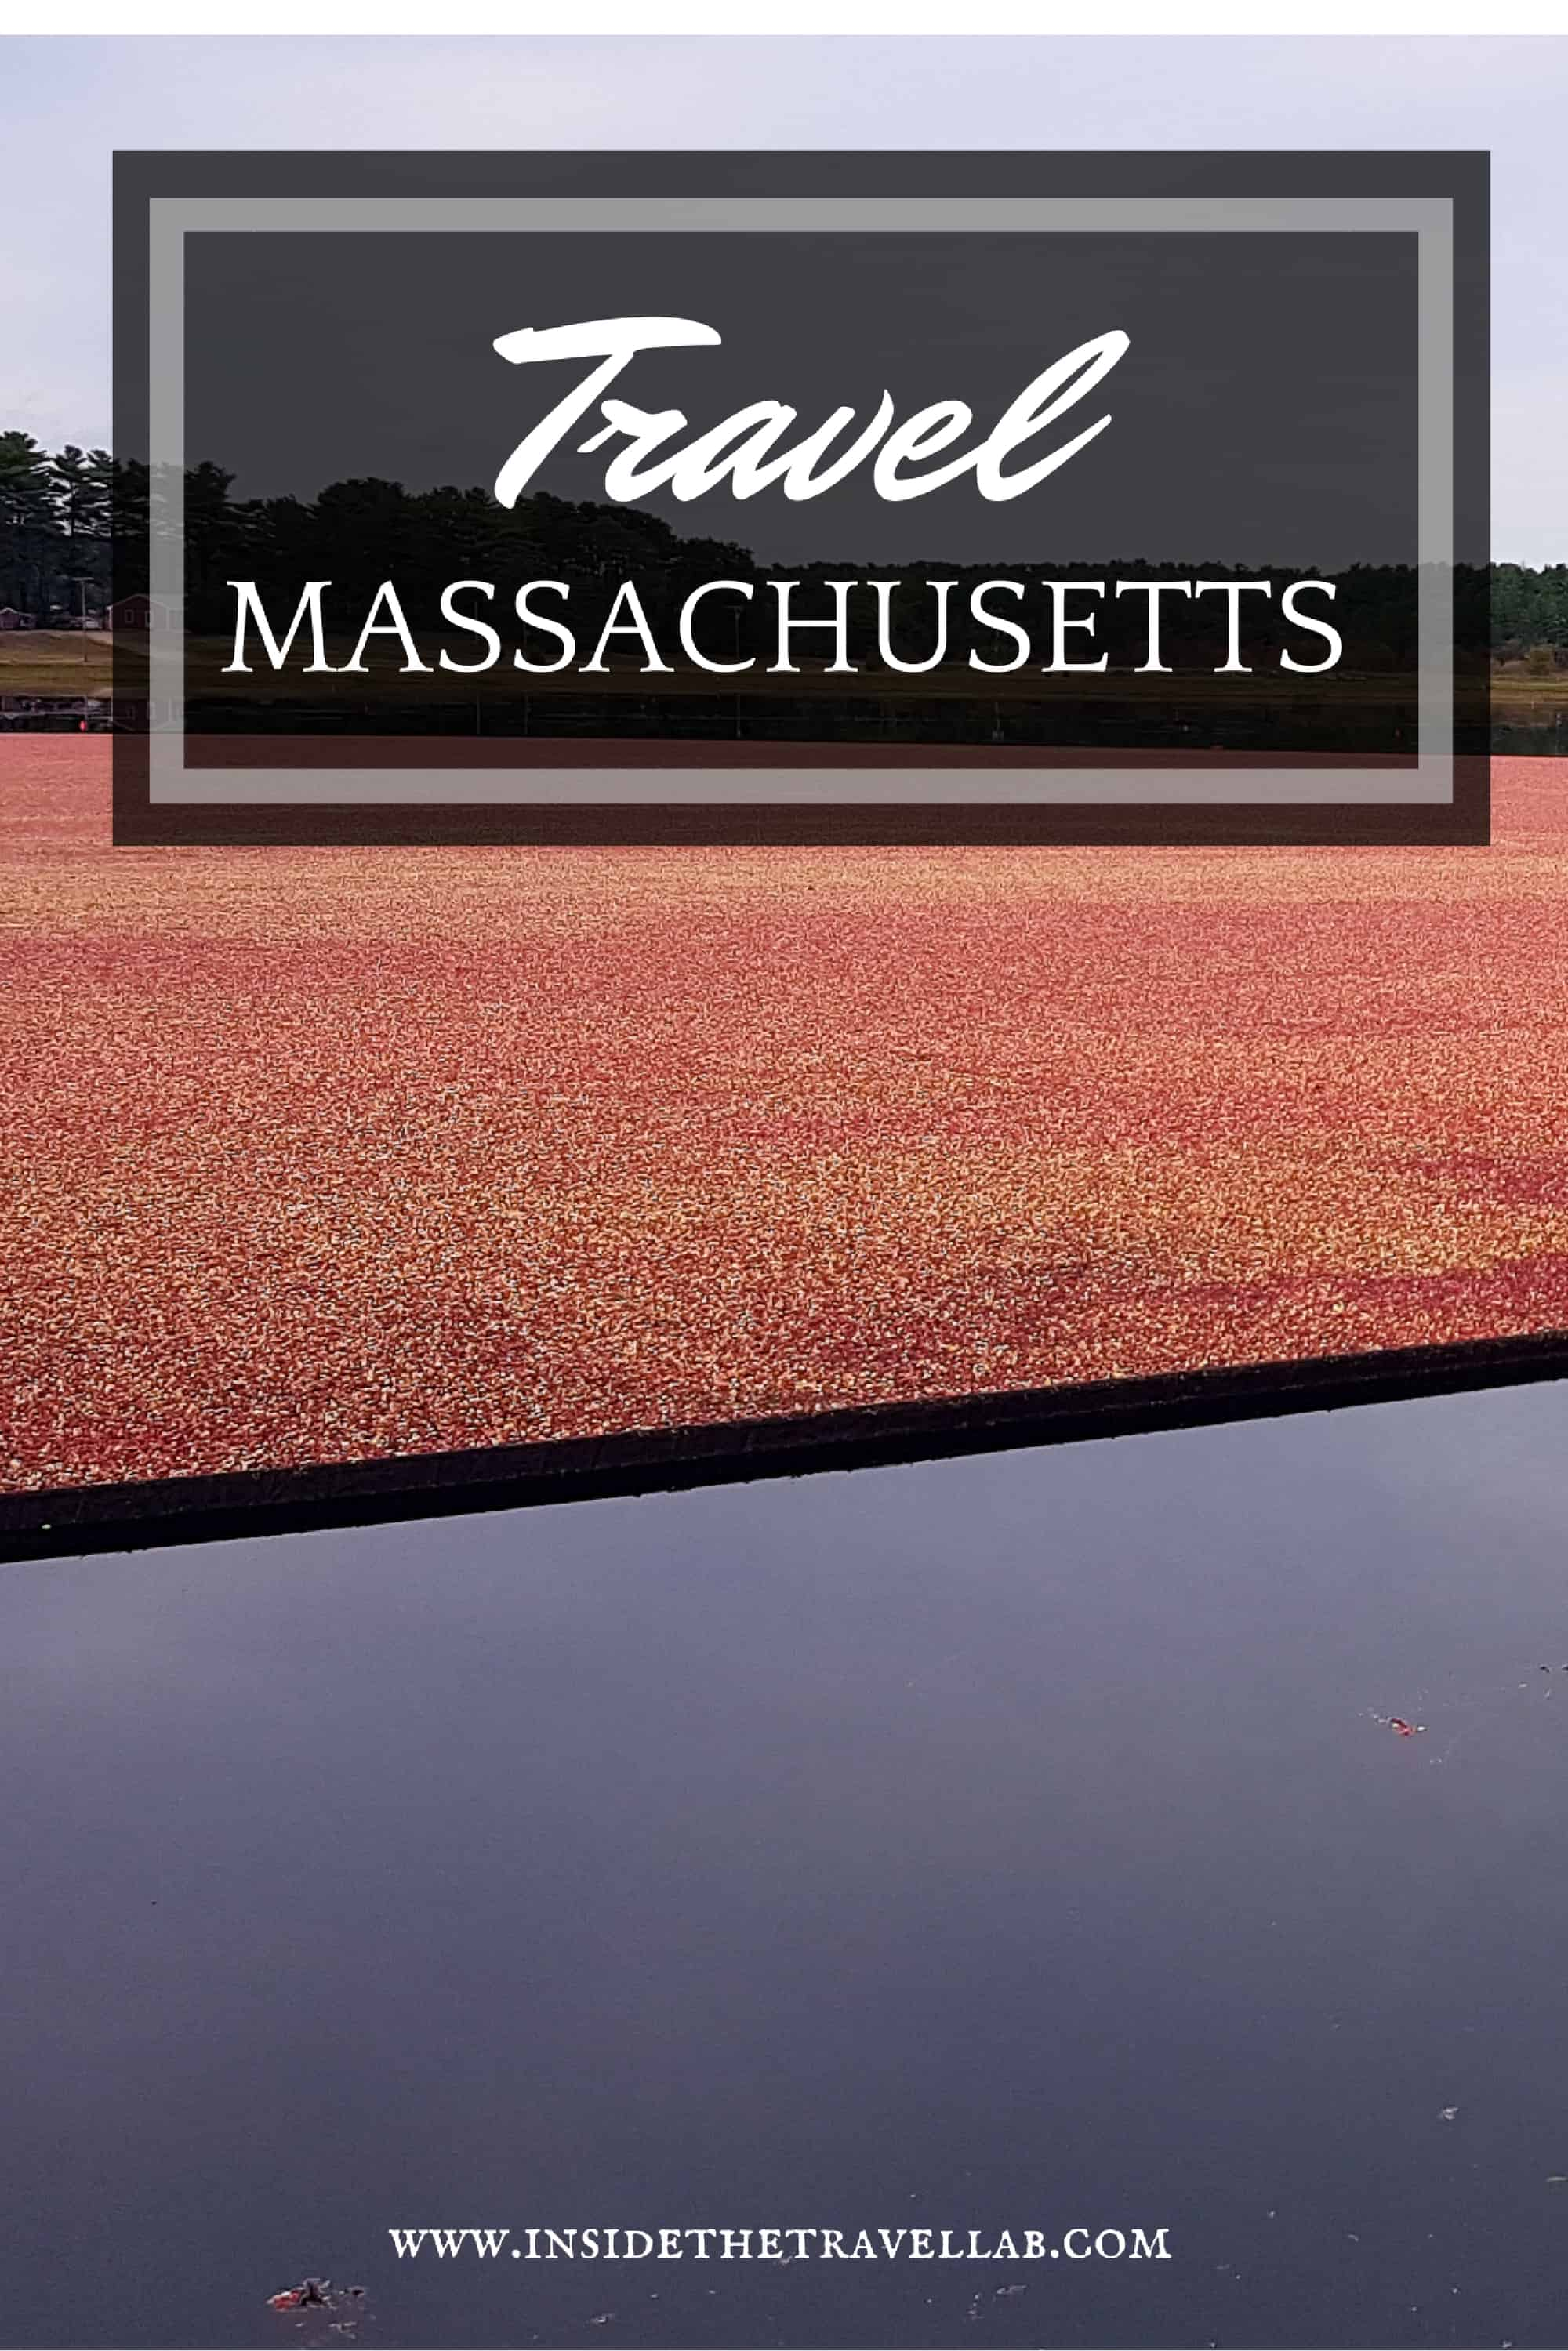 travel-boston-massachusetts